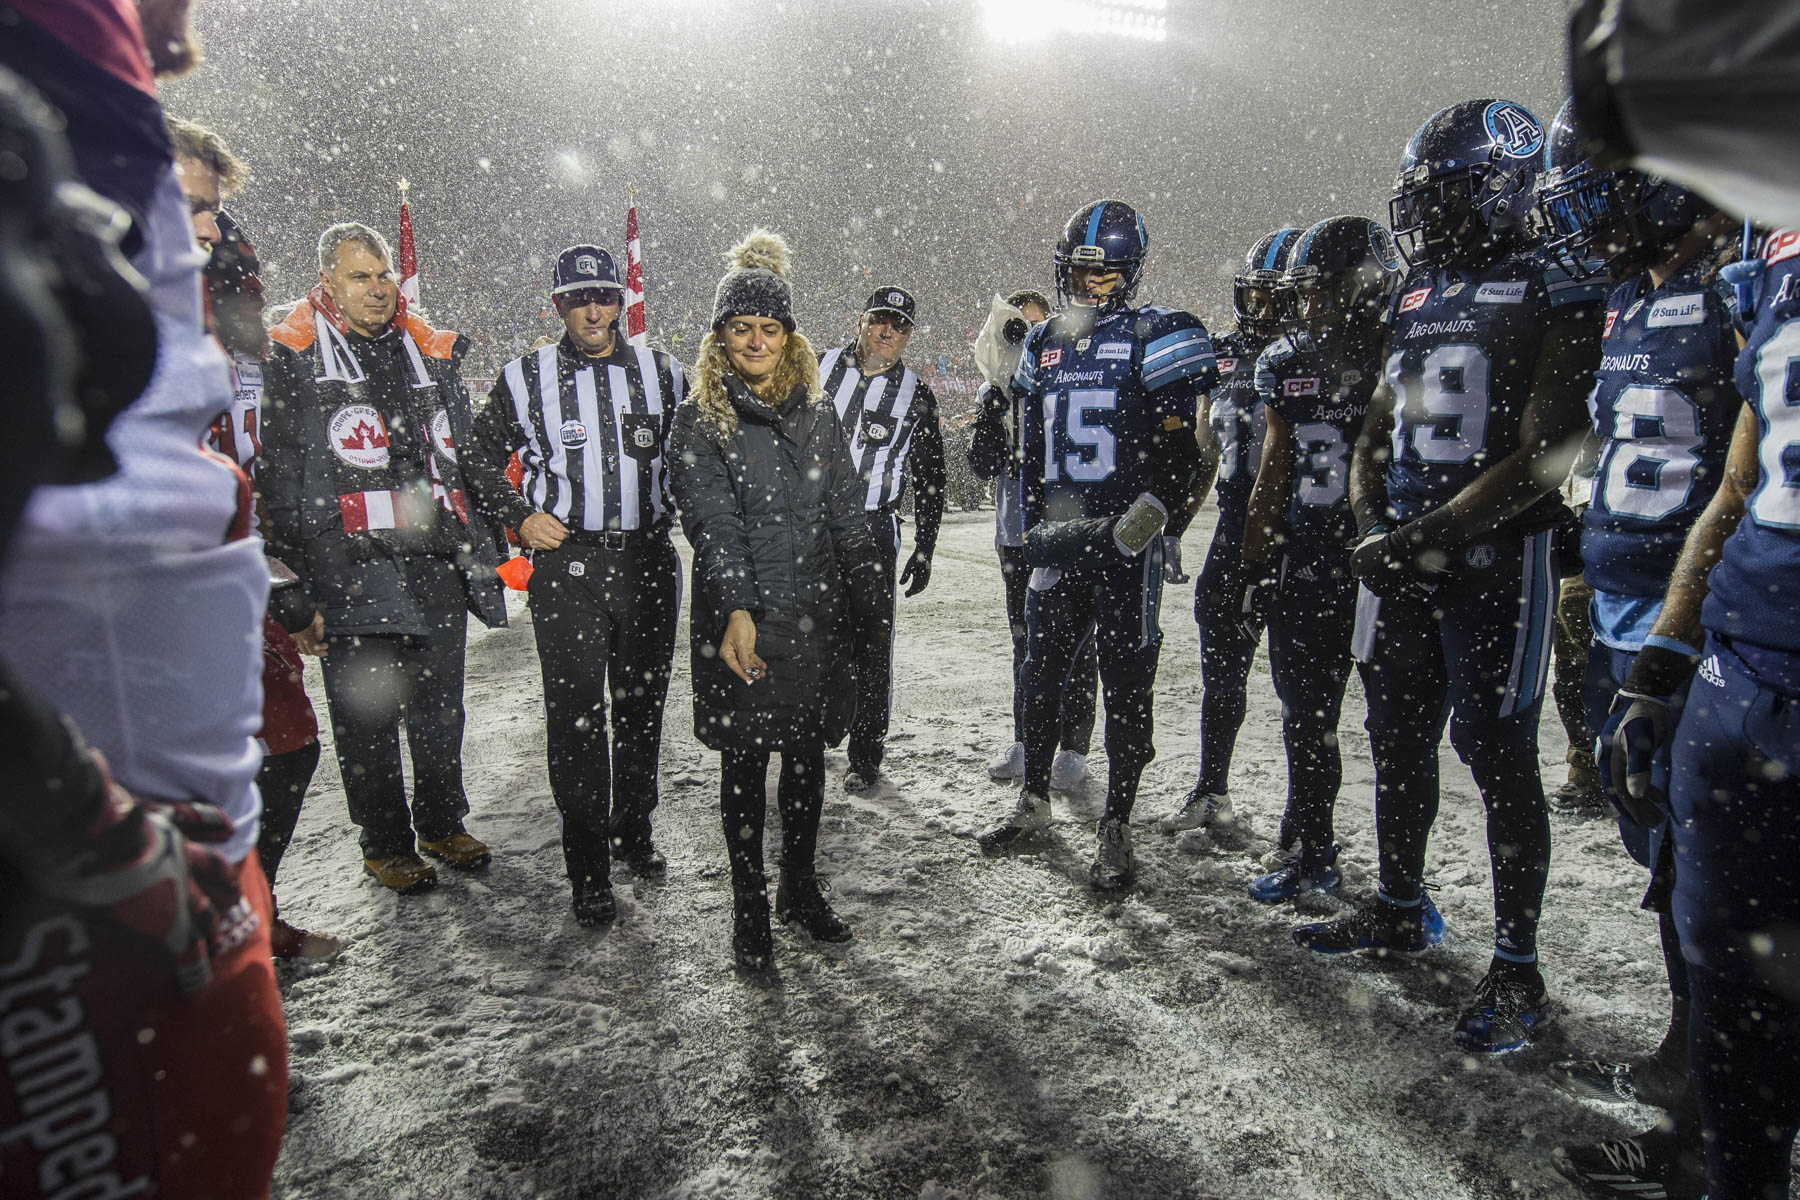 The Governor General conducted the coin toss to officially kick off the 105th edition of the Grey Cup Championship Game between the Toronto Argonauts and the Calgary Stampeders at TD Place, in Ottawa, on November 26, 2017.